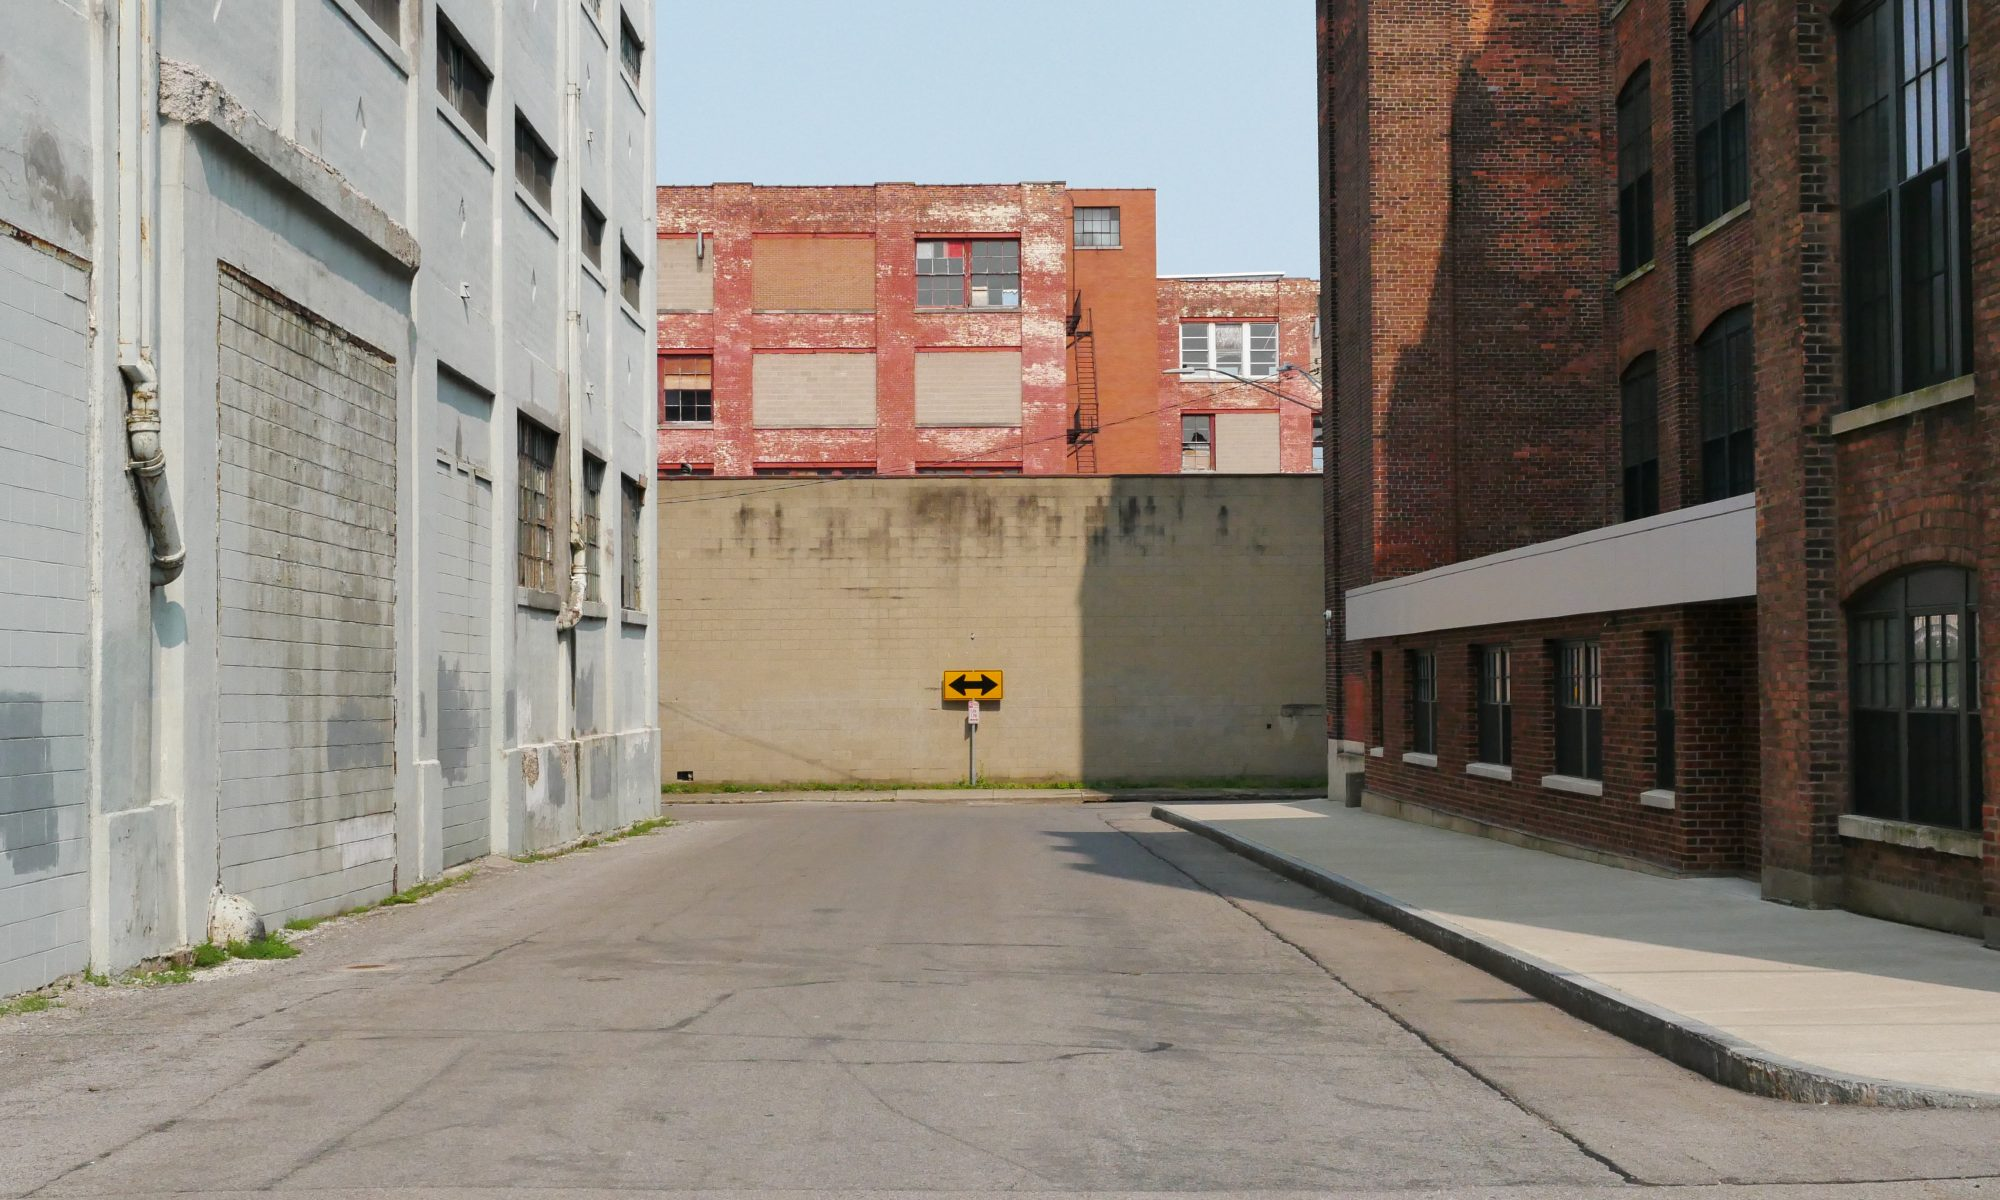 an urban street dead-ends between two warehouse buildings